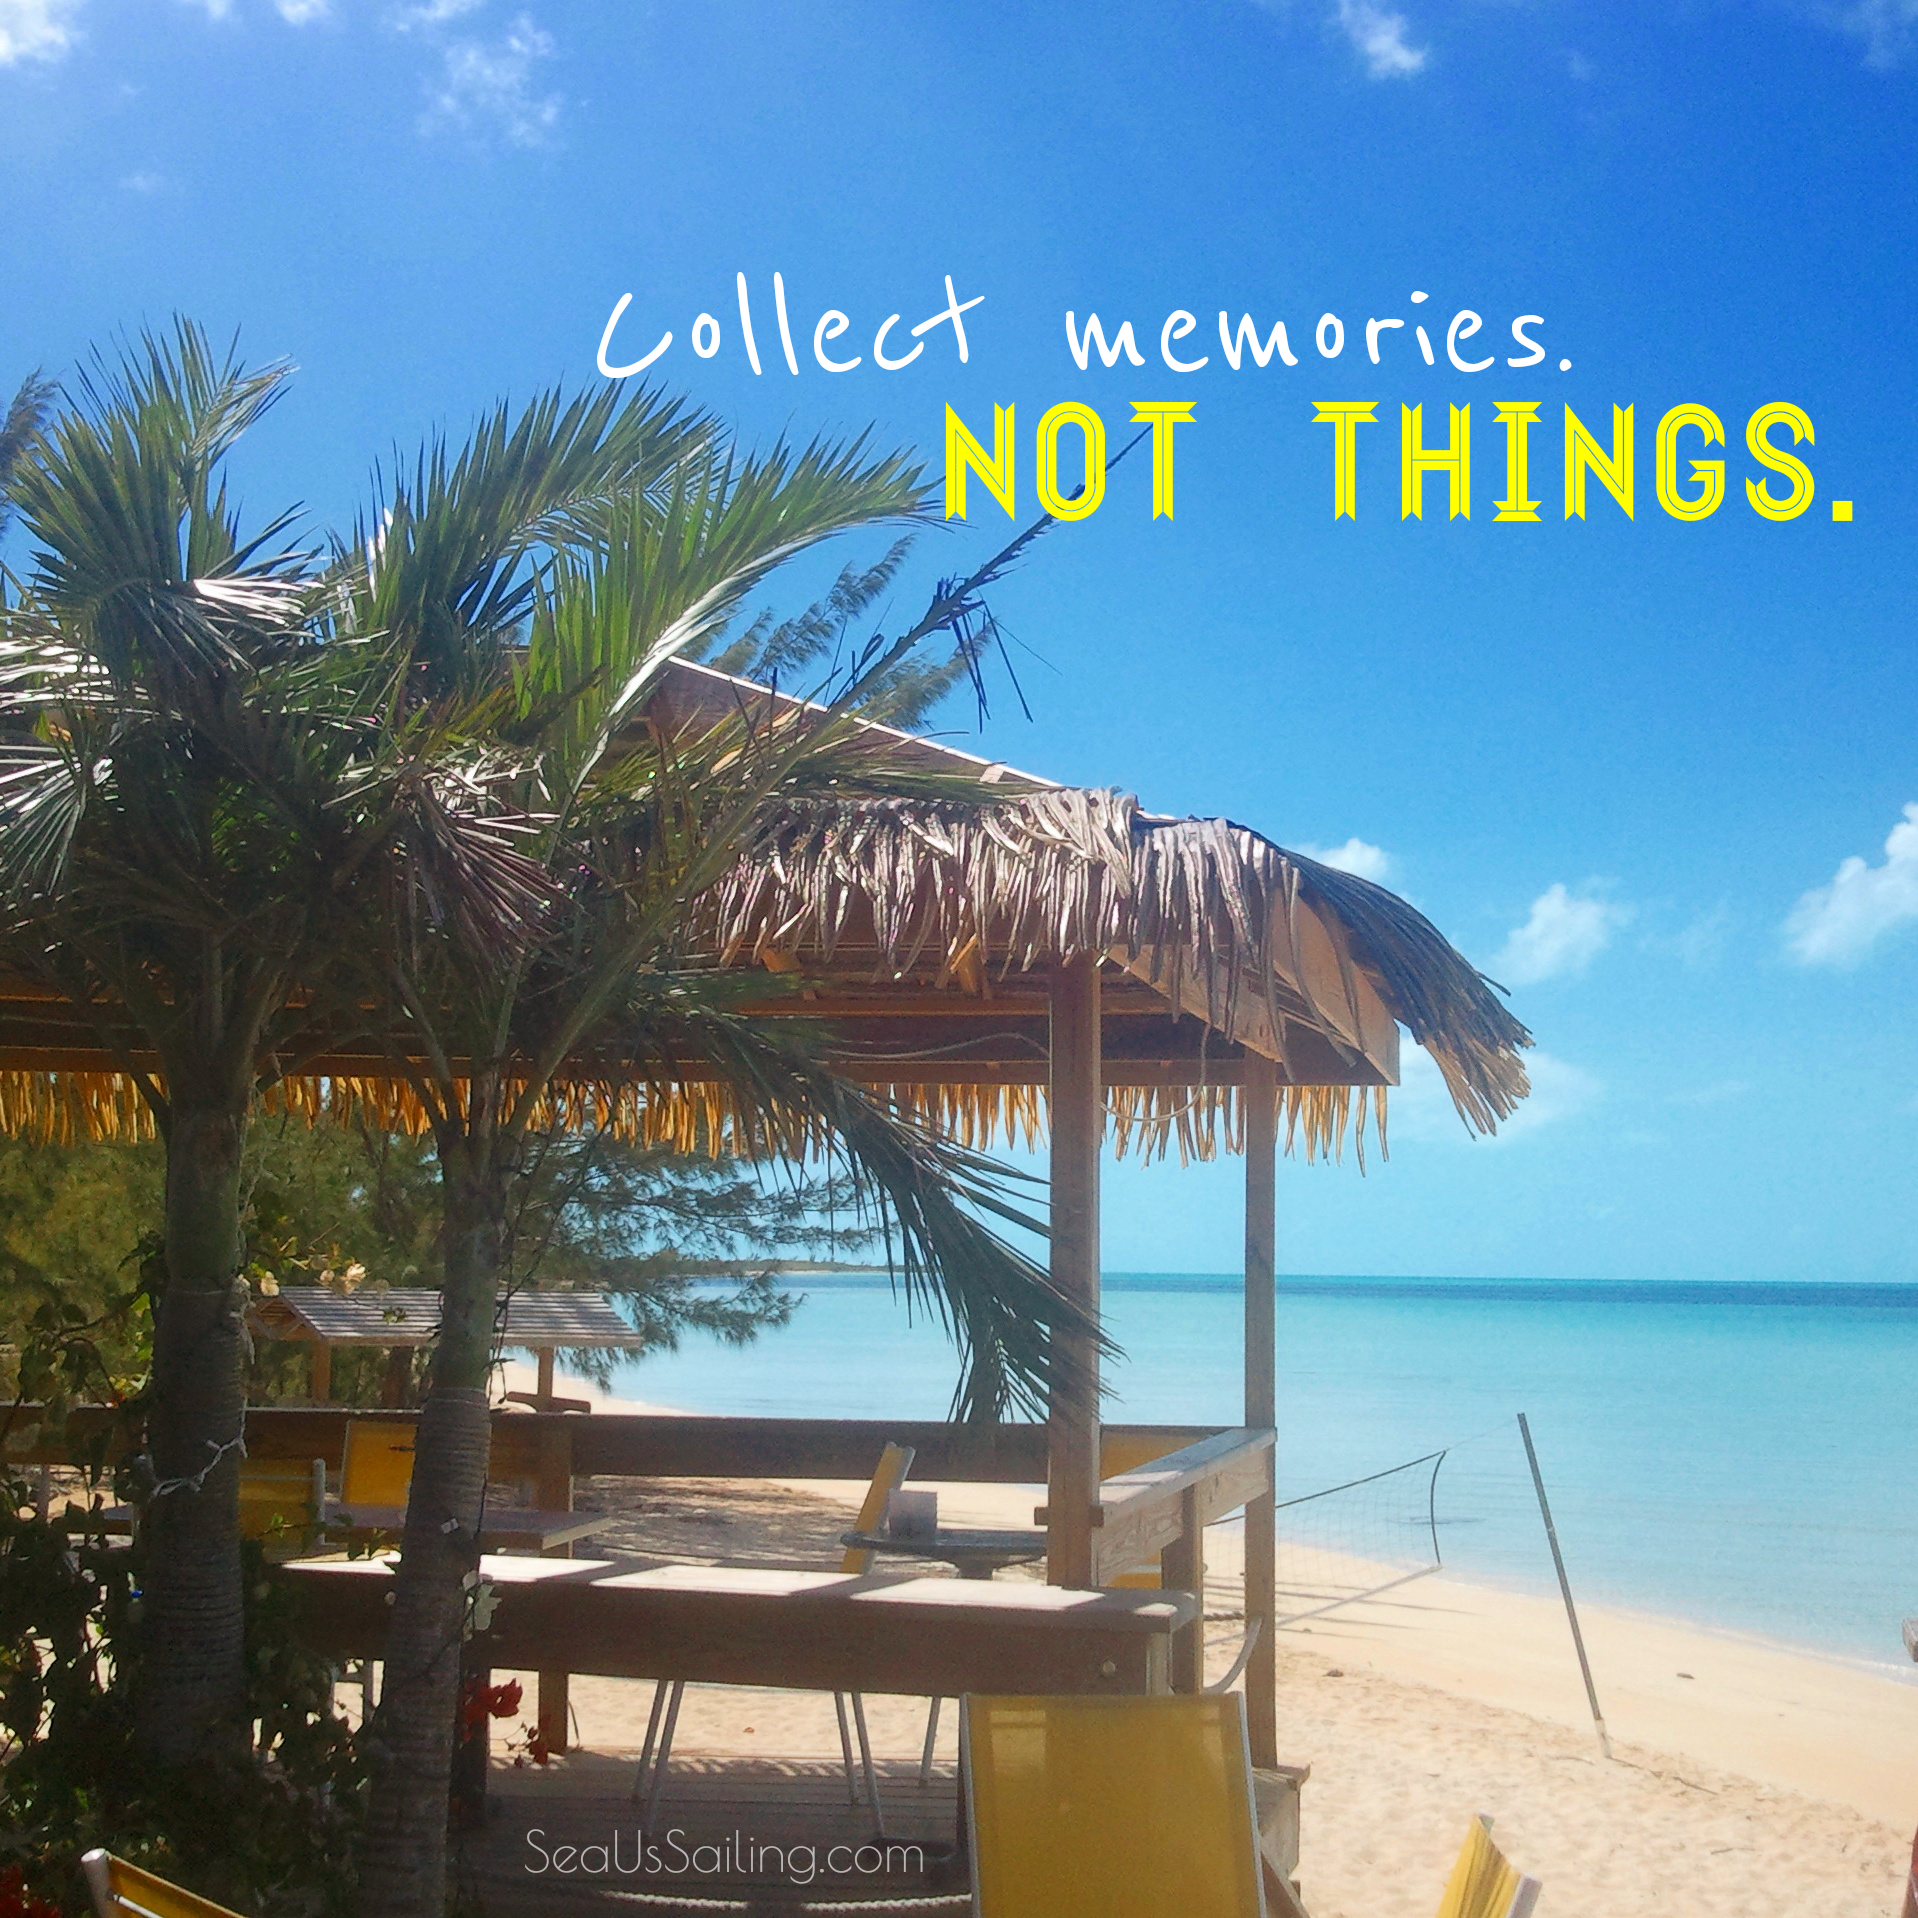 Quote_ Collect memories. Not things